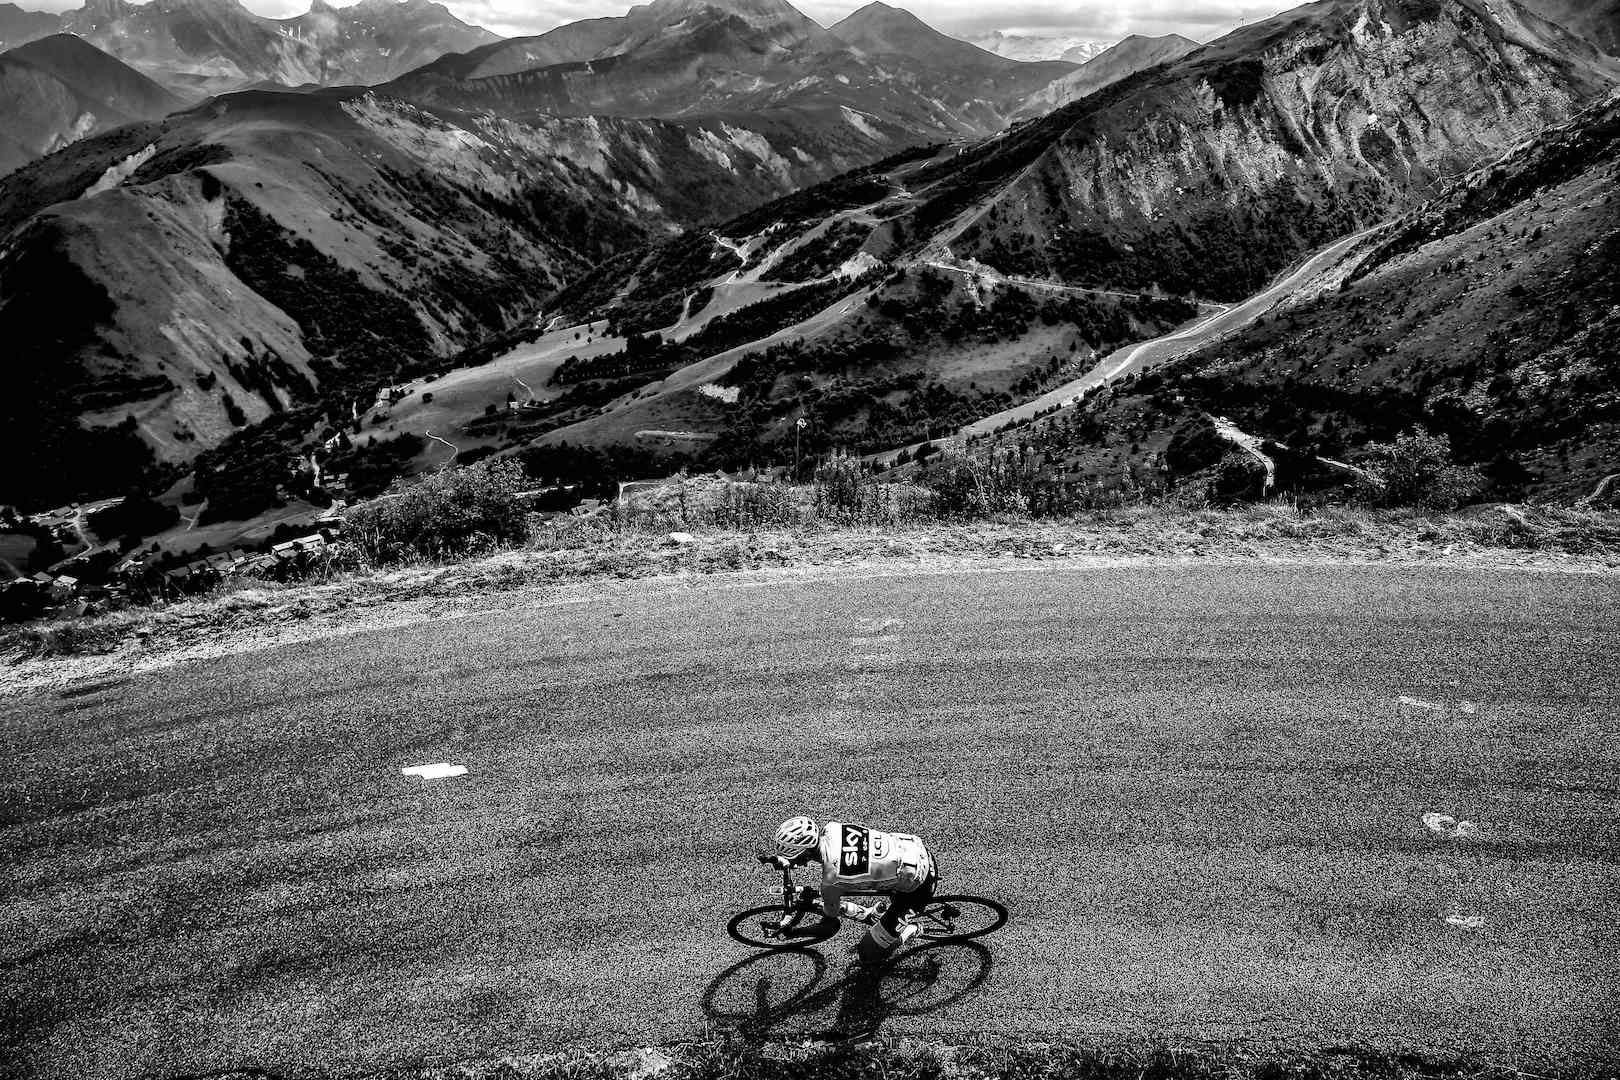 BLACK AND WHITE VERSION Great Britain's Christopher Froome, wearing the overall leader's yellow jersey, rides during the 183 km seventeenth stage of the 104th edition of the Tour de France cycling race on July 19, 2017 between Le La Mure and Serre-Chevalier, French Alps. / AFP PHOTO / LIONEL BONAVENTURE (Photo credit should read LIONEL BONAVENTURE/AFP/Getty Images)